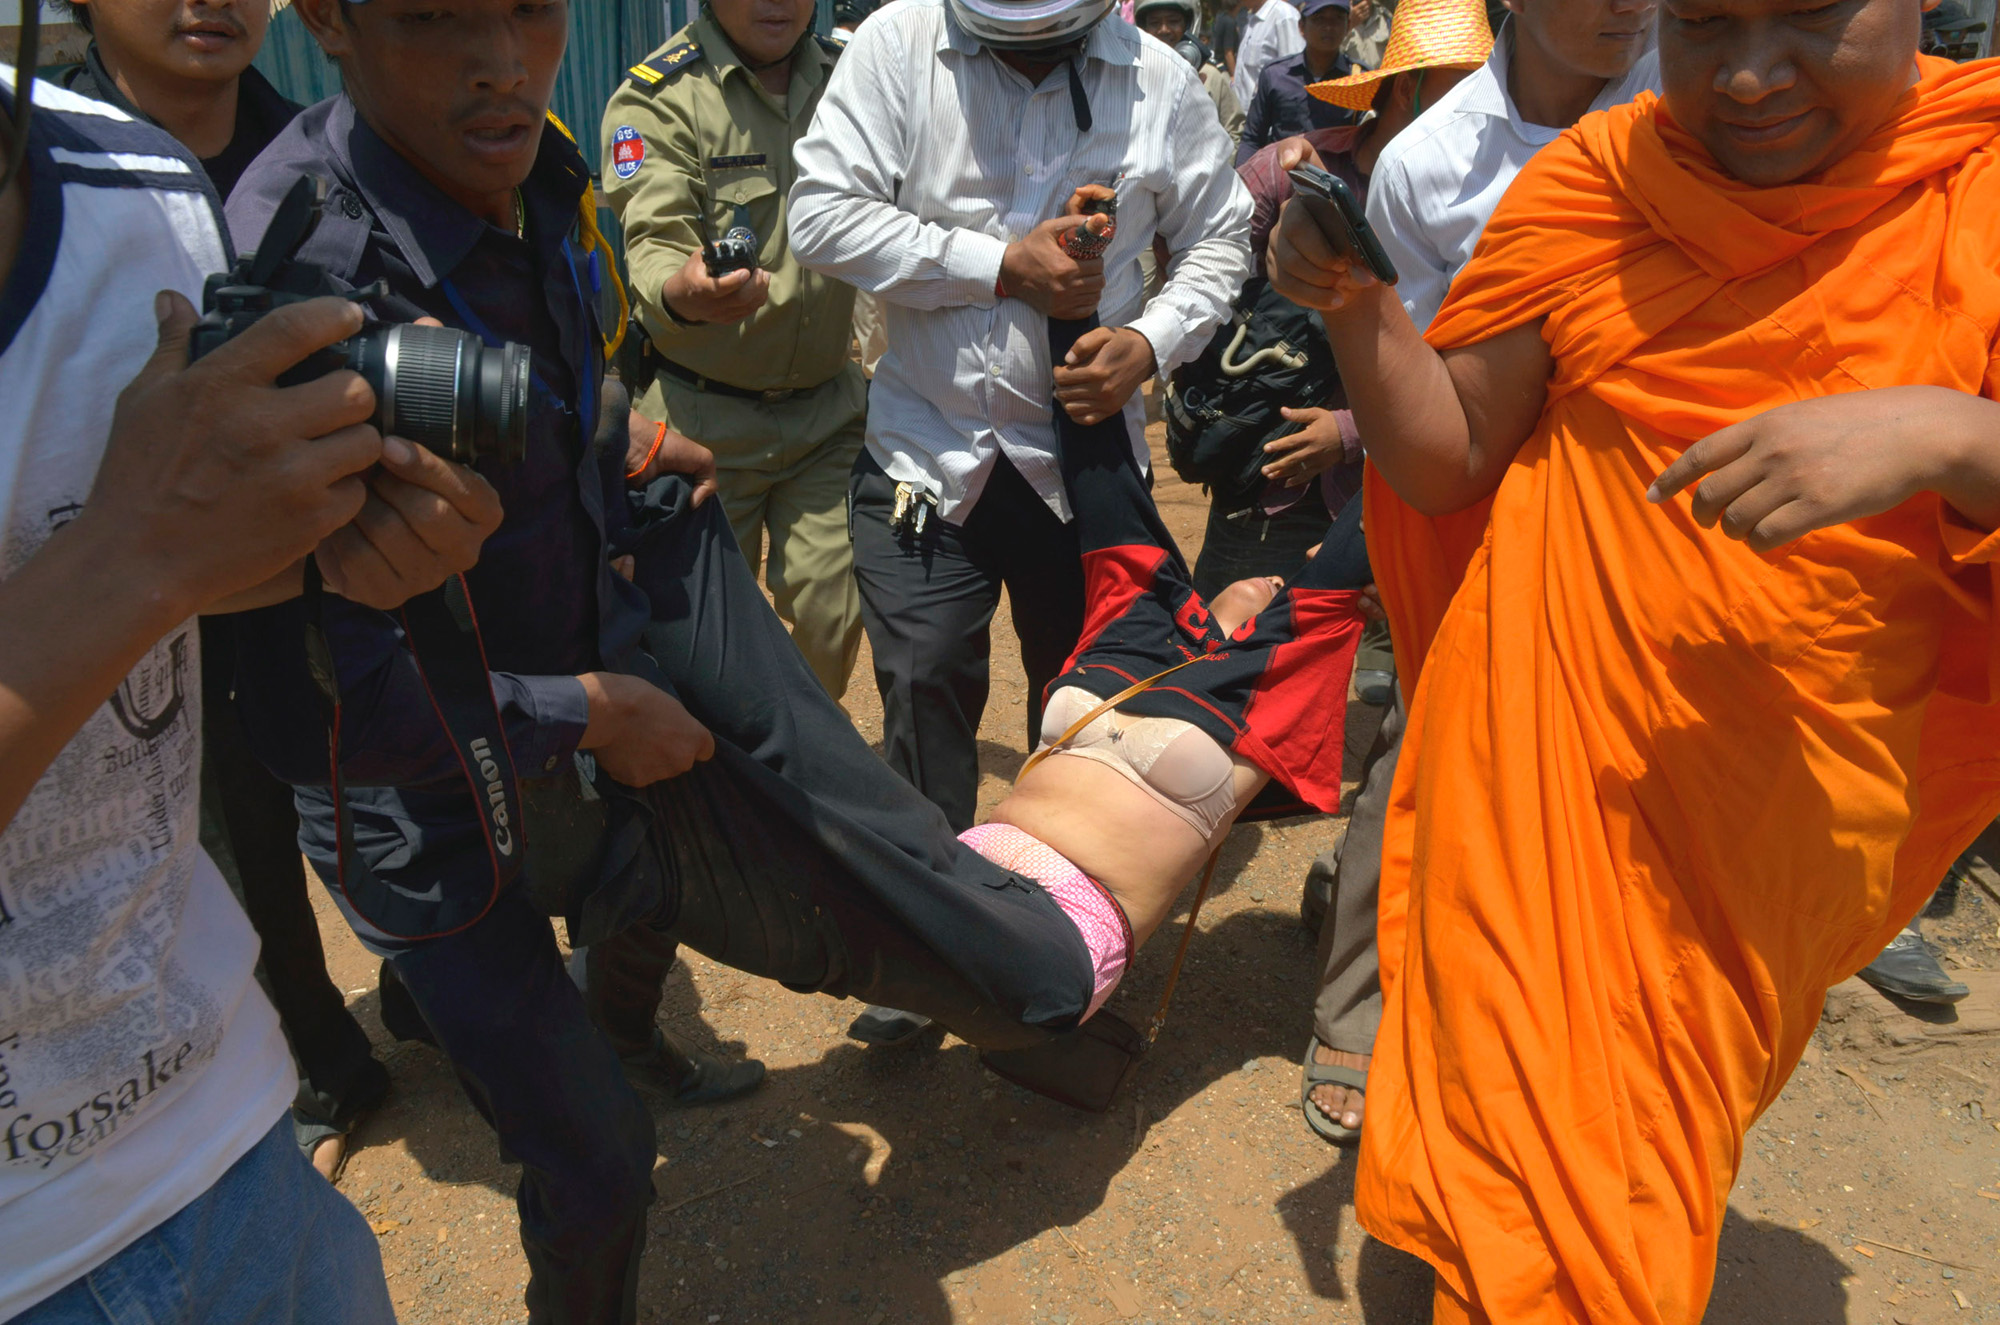 Police carry a protestor to a waiting police van following her arrest. Buddhist monk Loun Saveth videotapes the proceedings. He was arrested two days later. The woman was one of twelve arrested for protesting the loss of their homes at Boeung Kak. The protestors were forced out of their homes along the lakefront by the land developer and the municipal government.